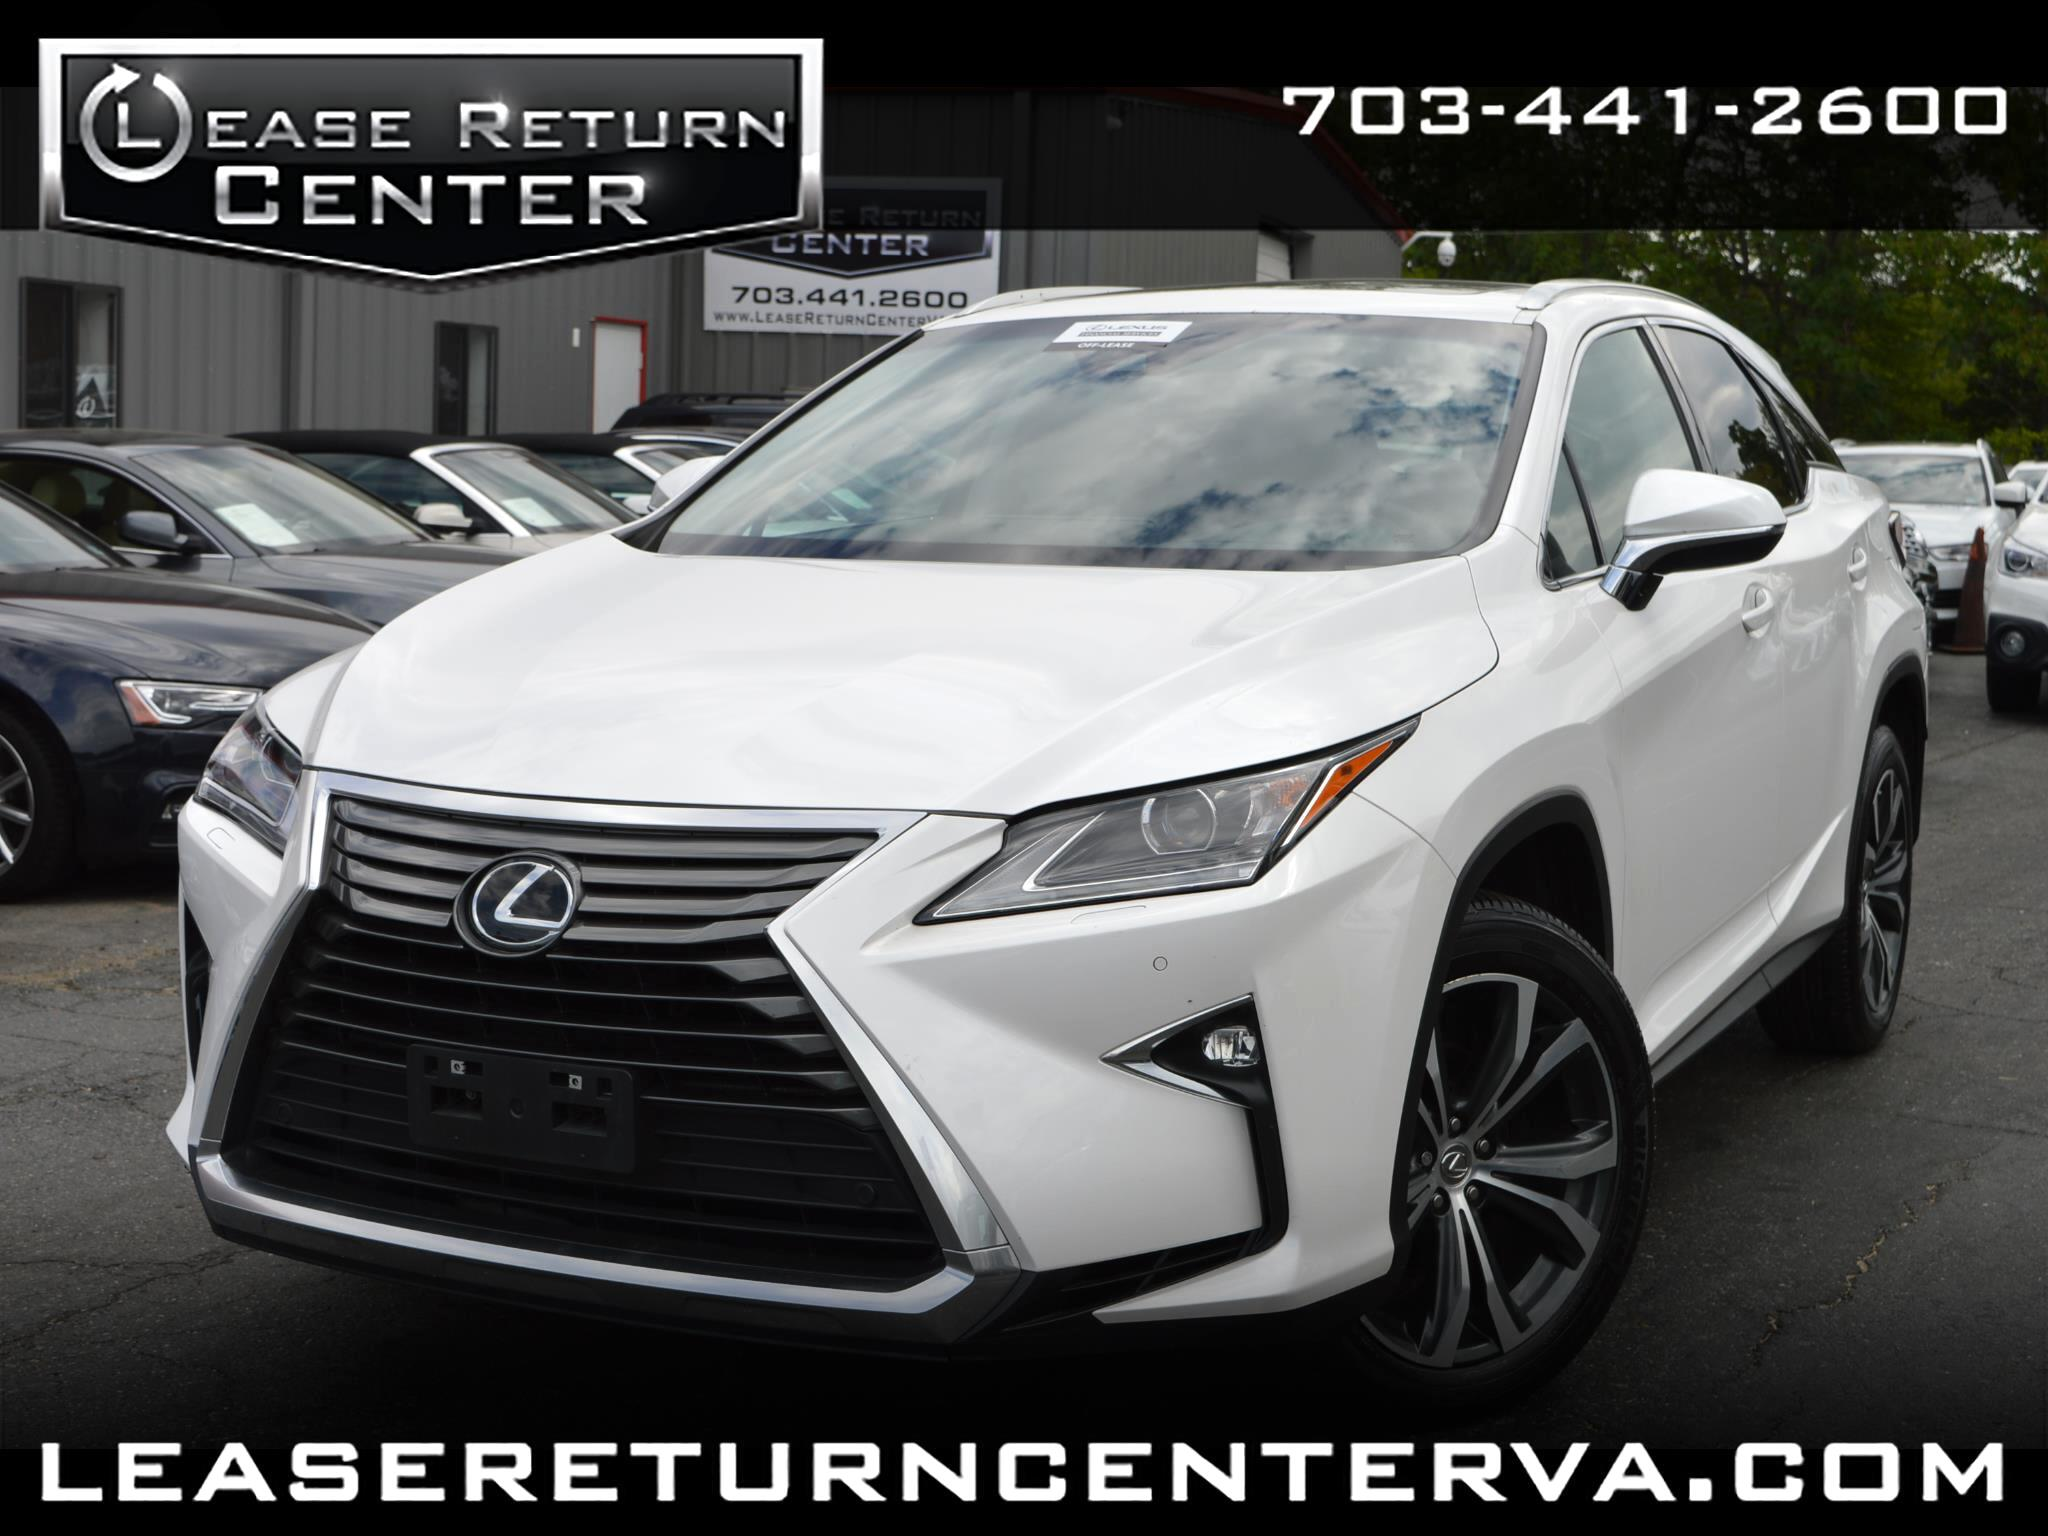 2017 Lexus RX AWD Premium with Navigation